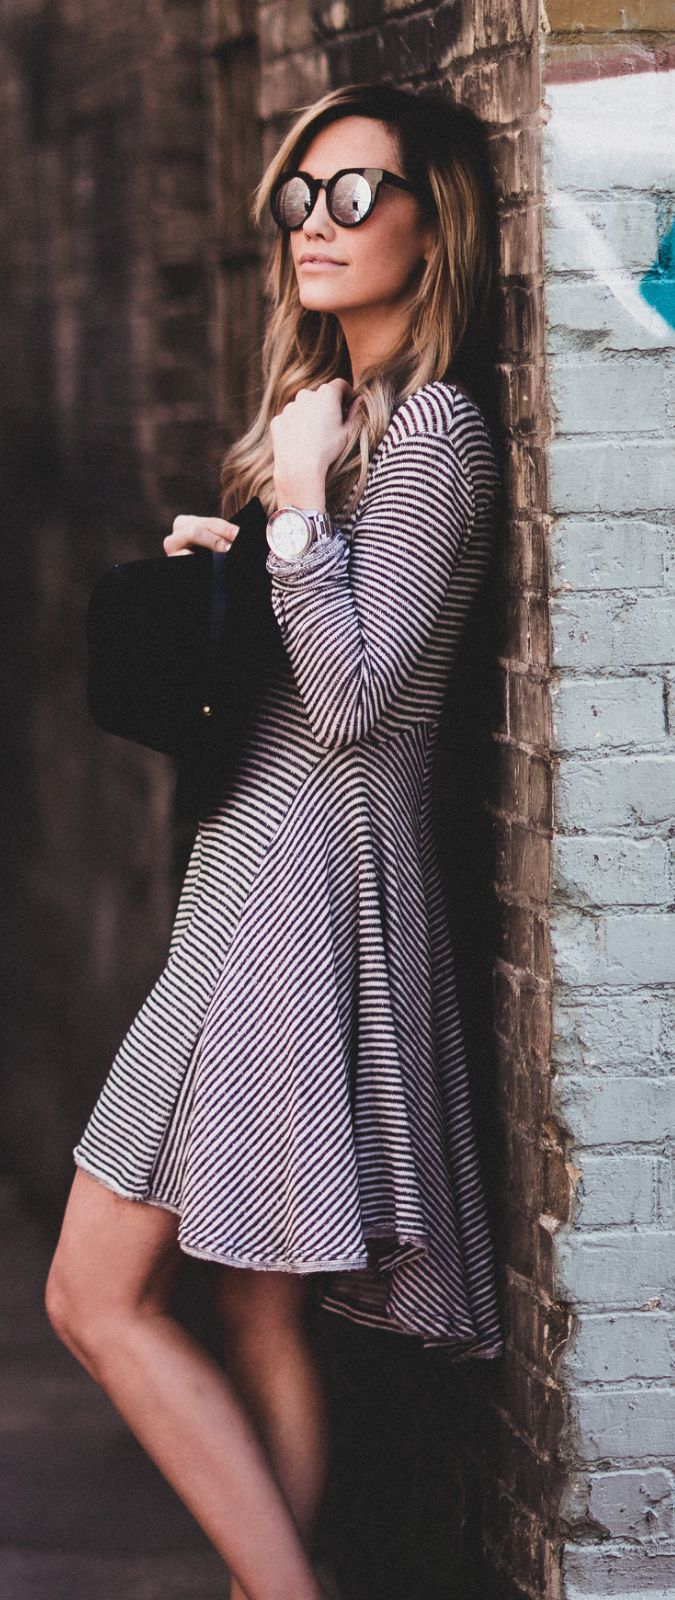 Striped Outfit Ideas: Megan Anderson is wearing a long sleeved pinstripe Urban Outfitters dress